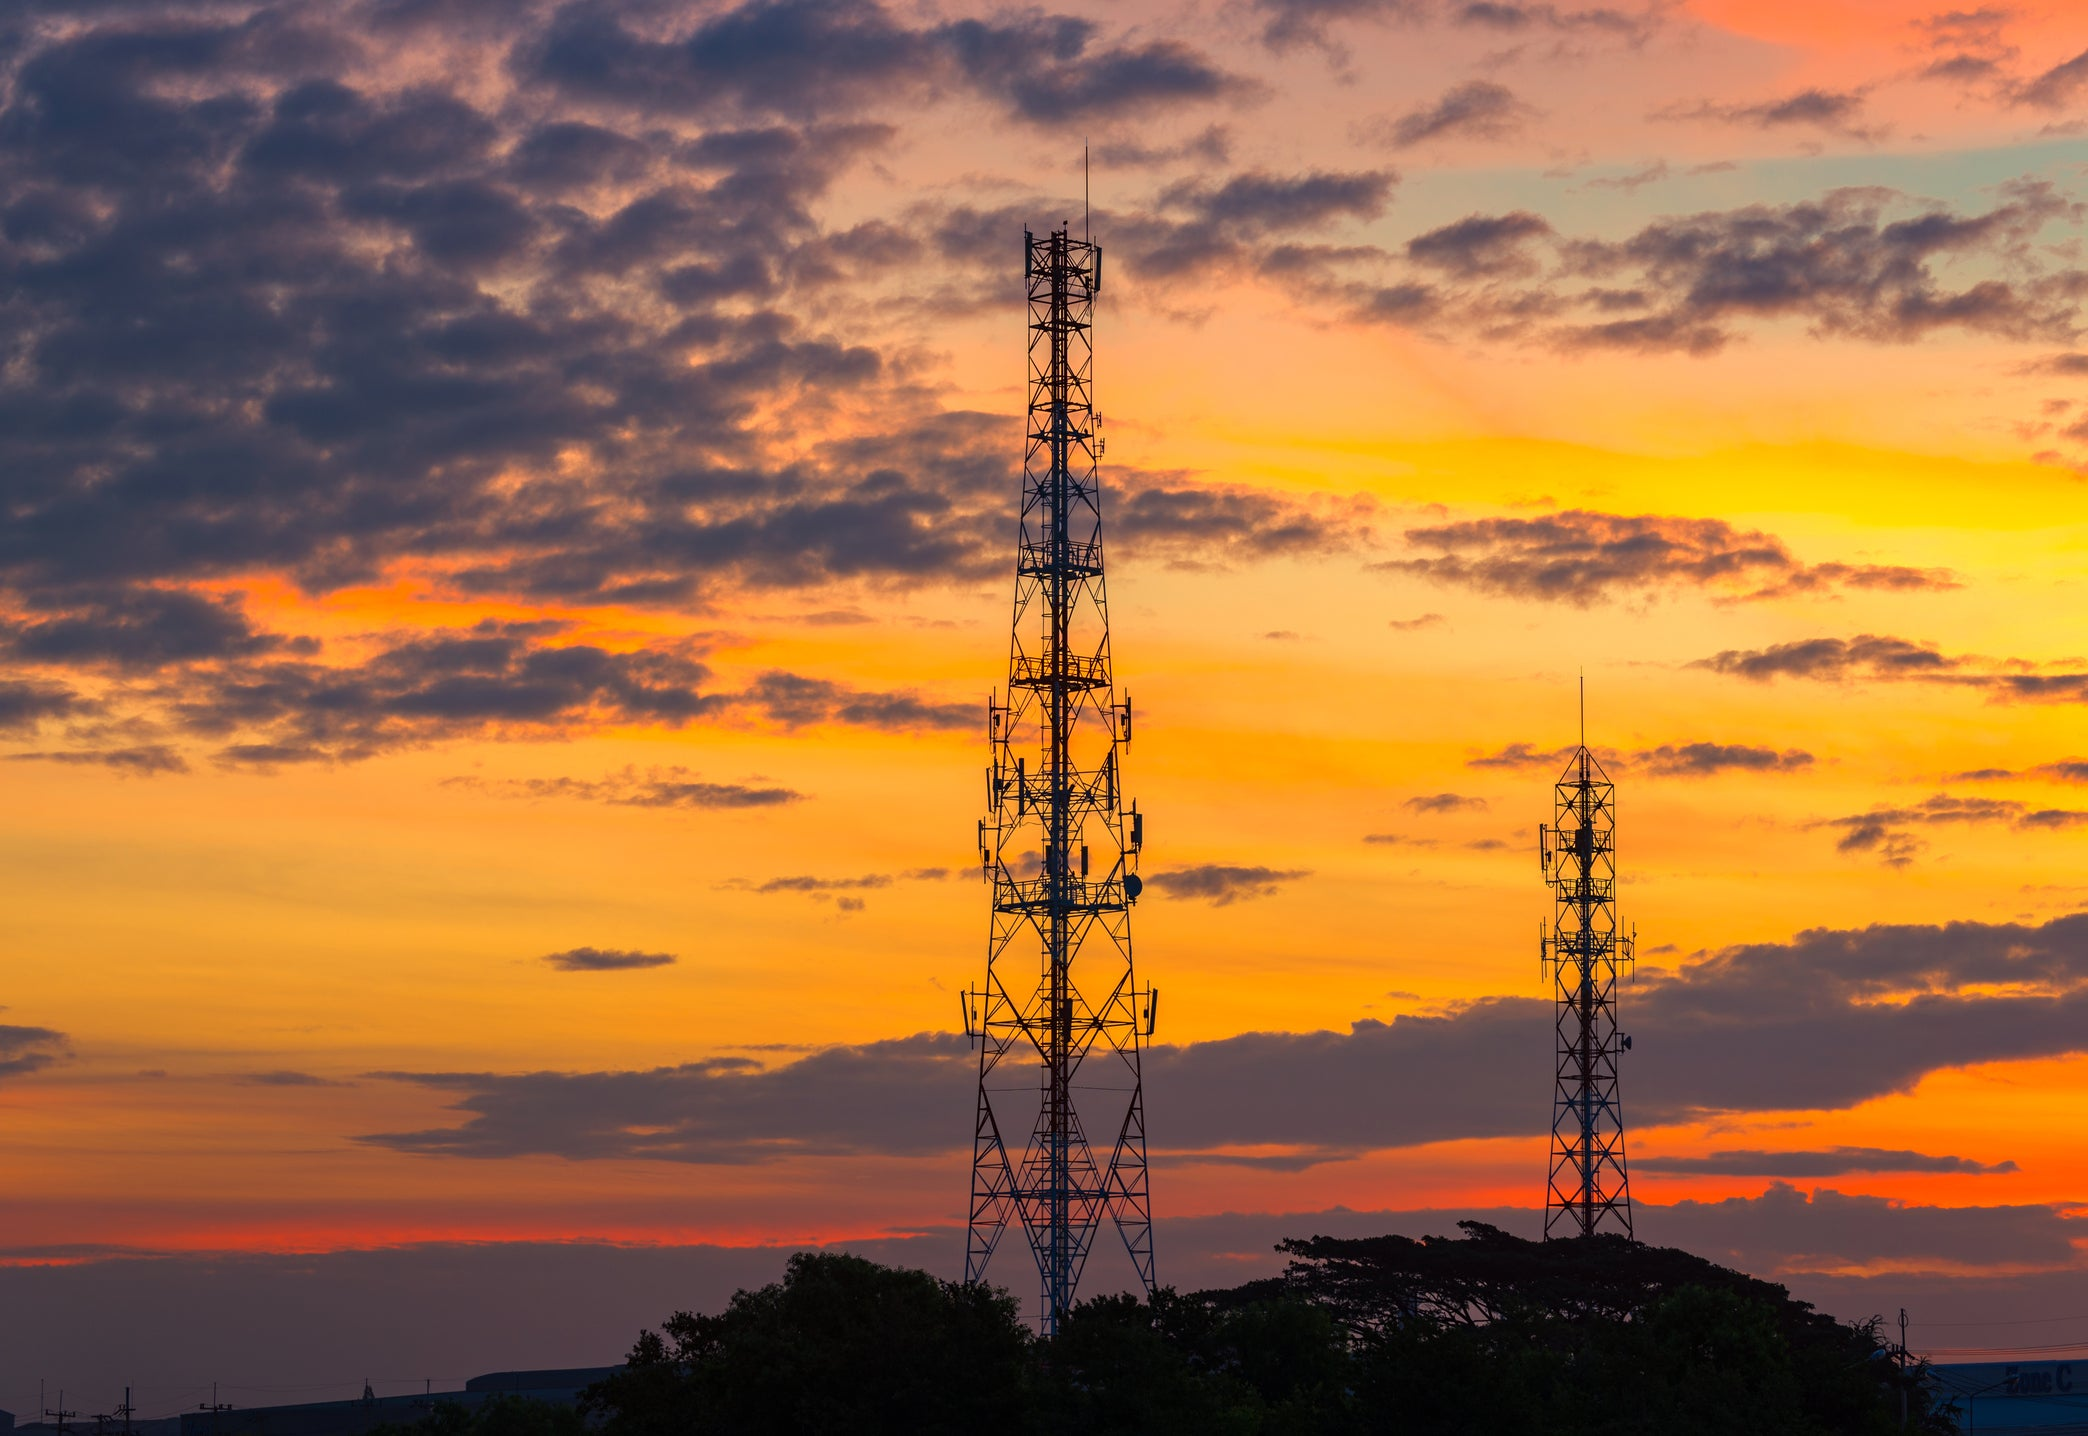 Top 3 Cell Tower Companies in the U.S. | The Motley Fool